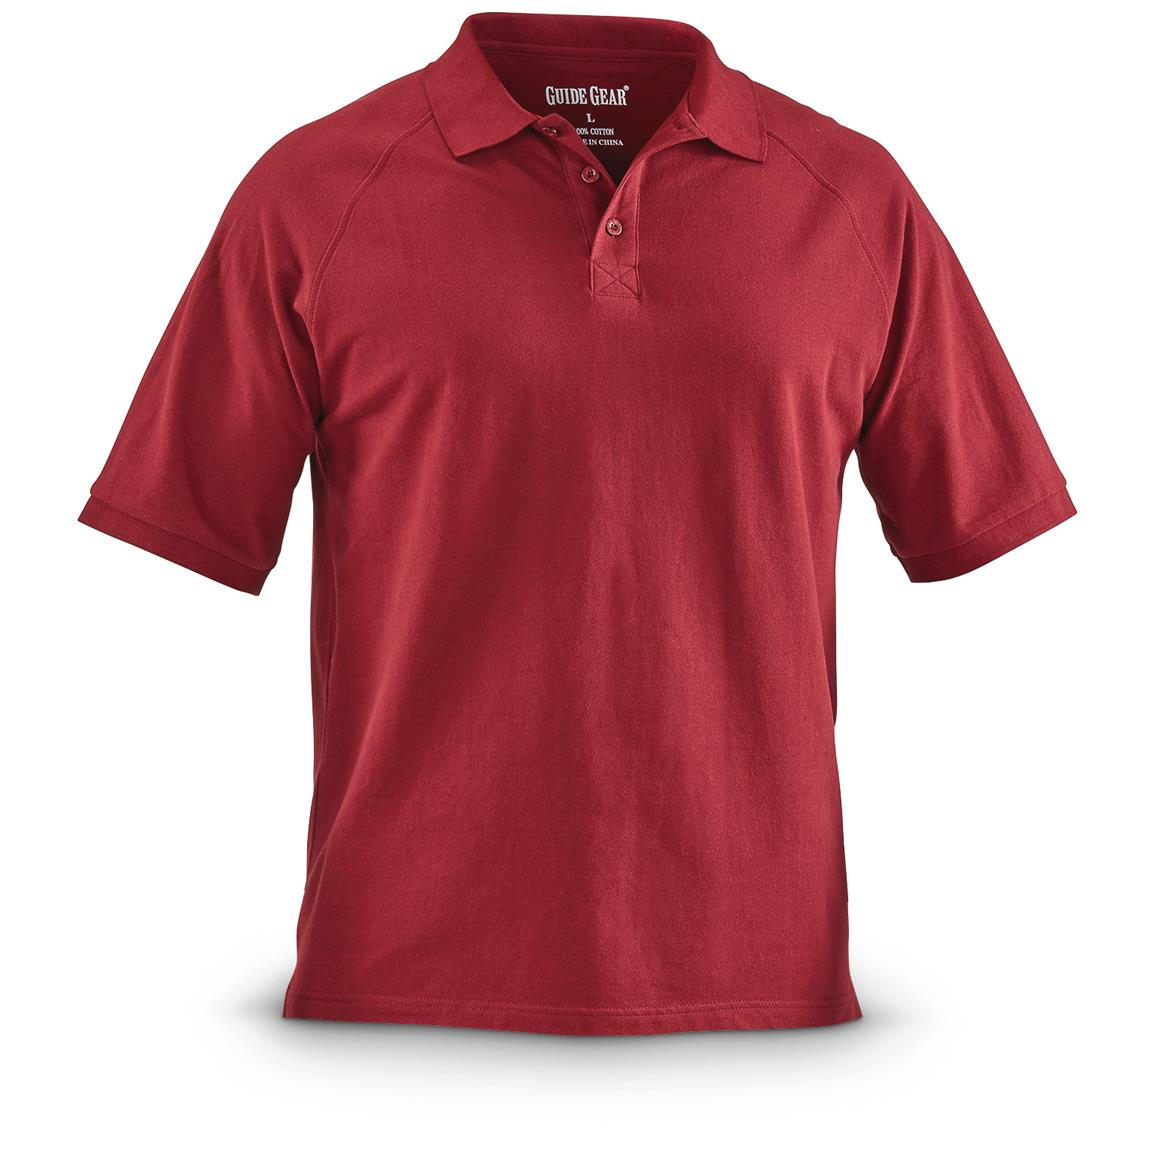 Guide Gear Men's Cotton Polo Shirt, Burgundy